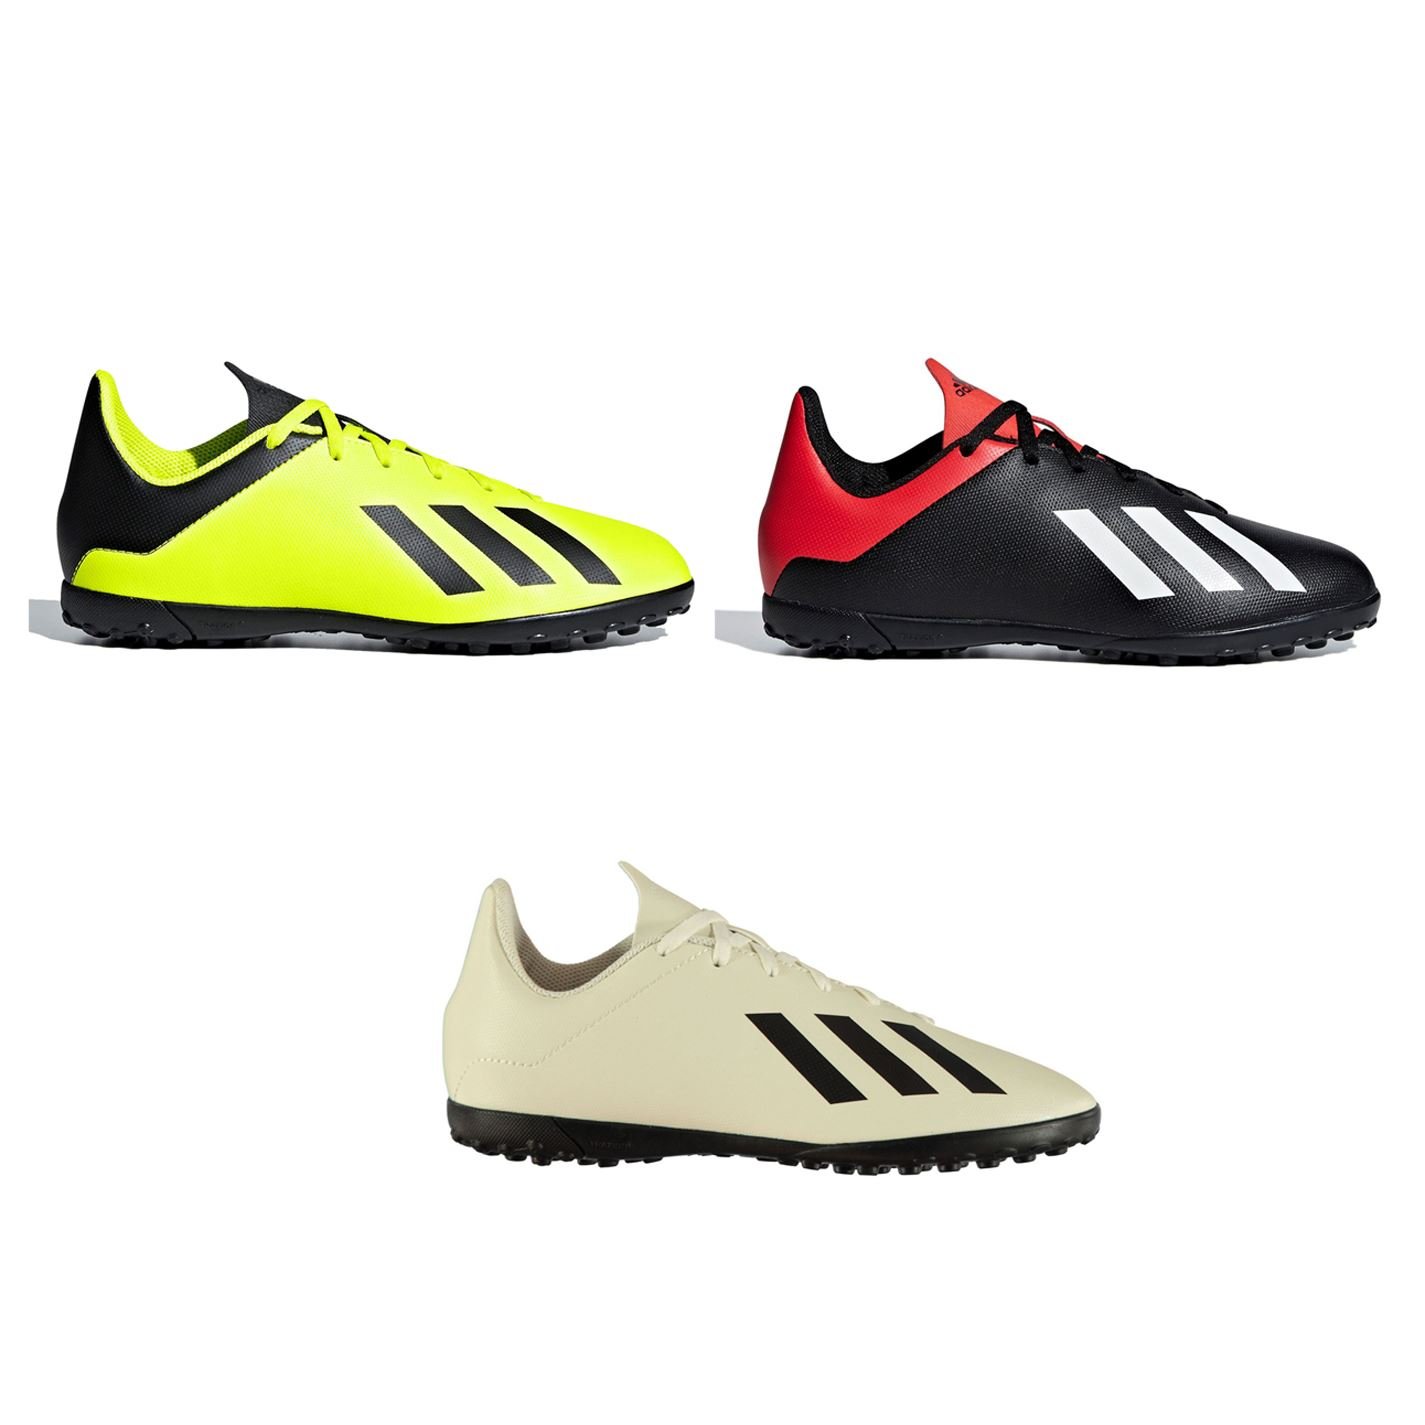 82c24119a59 adidas X Tango 18.4 Astro Turf Football Trainers Childs Soccer Shoes  Sneakers